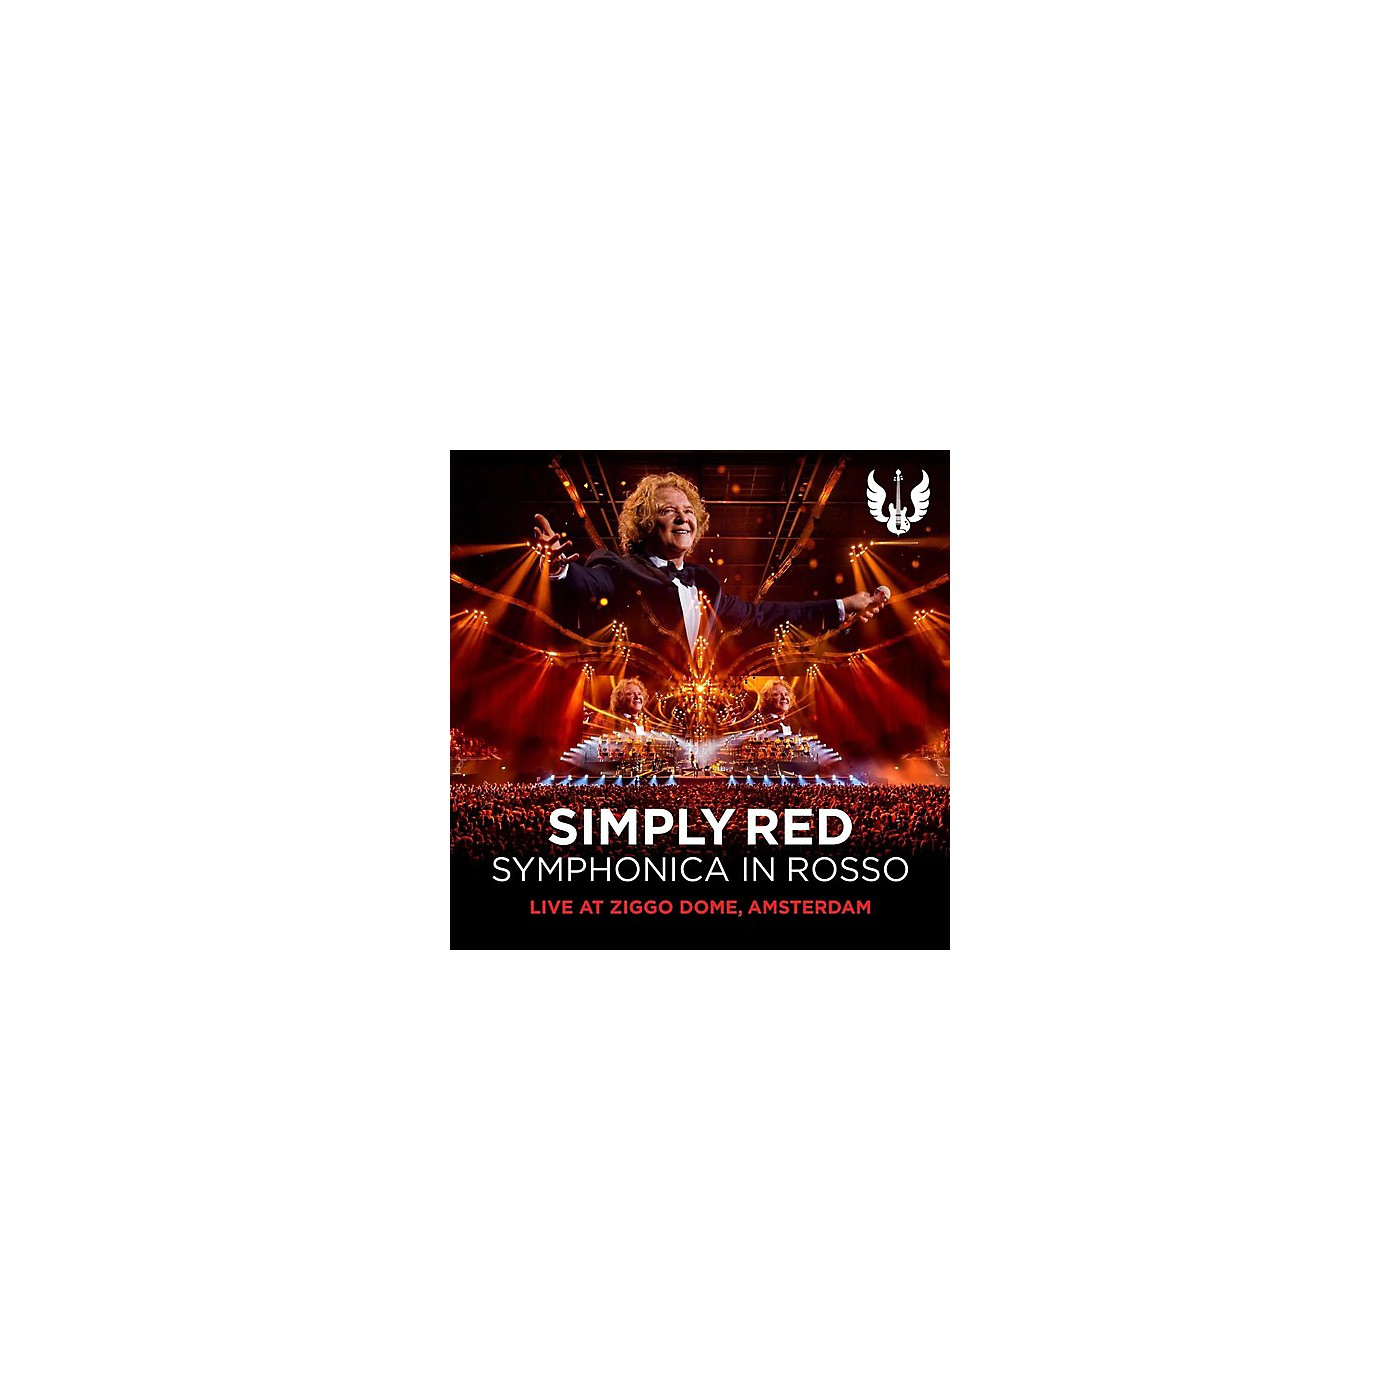 Alliance Simply Red - Symphonica In Rosso (live At Ziggo Dome Amsterdam) (CD) thumbnail